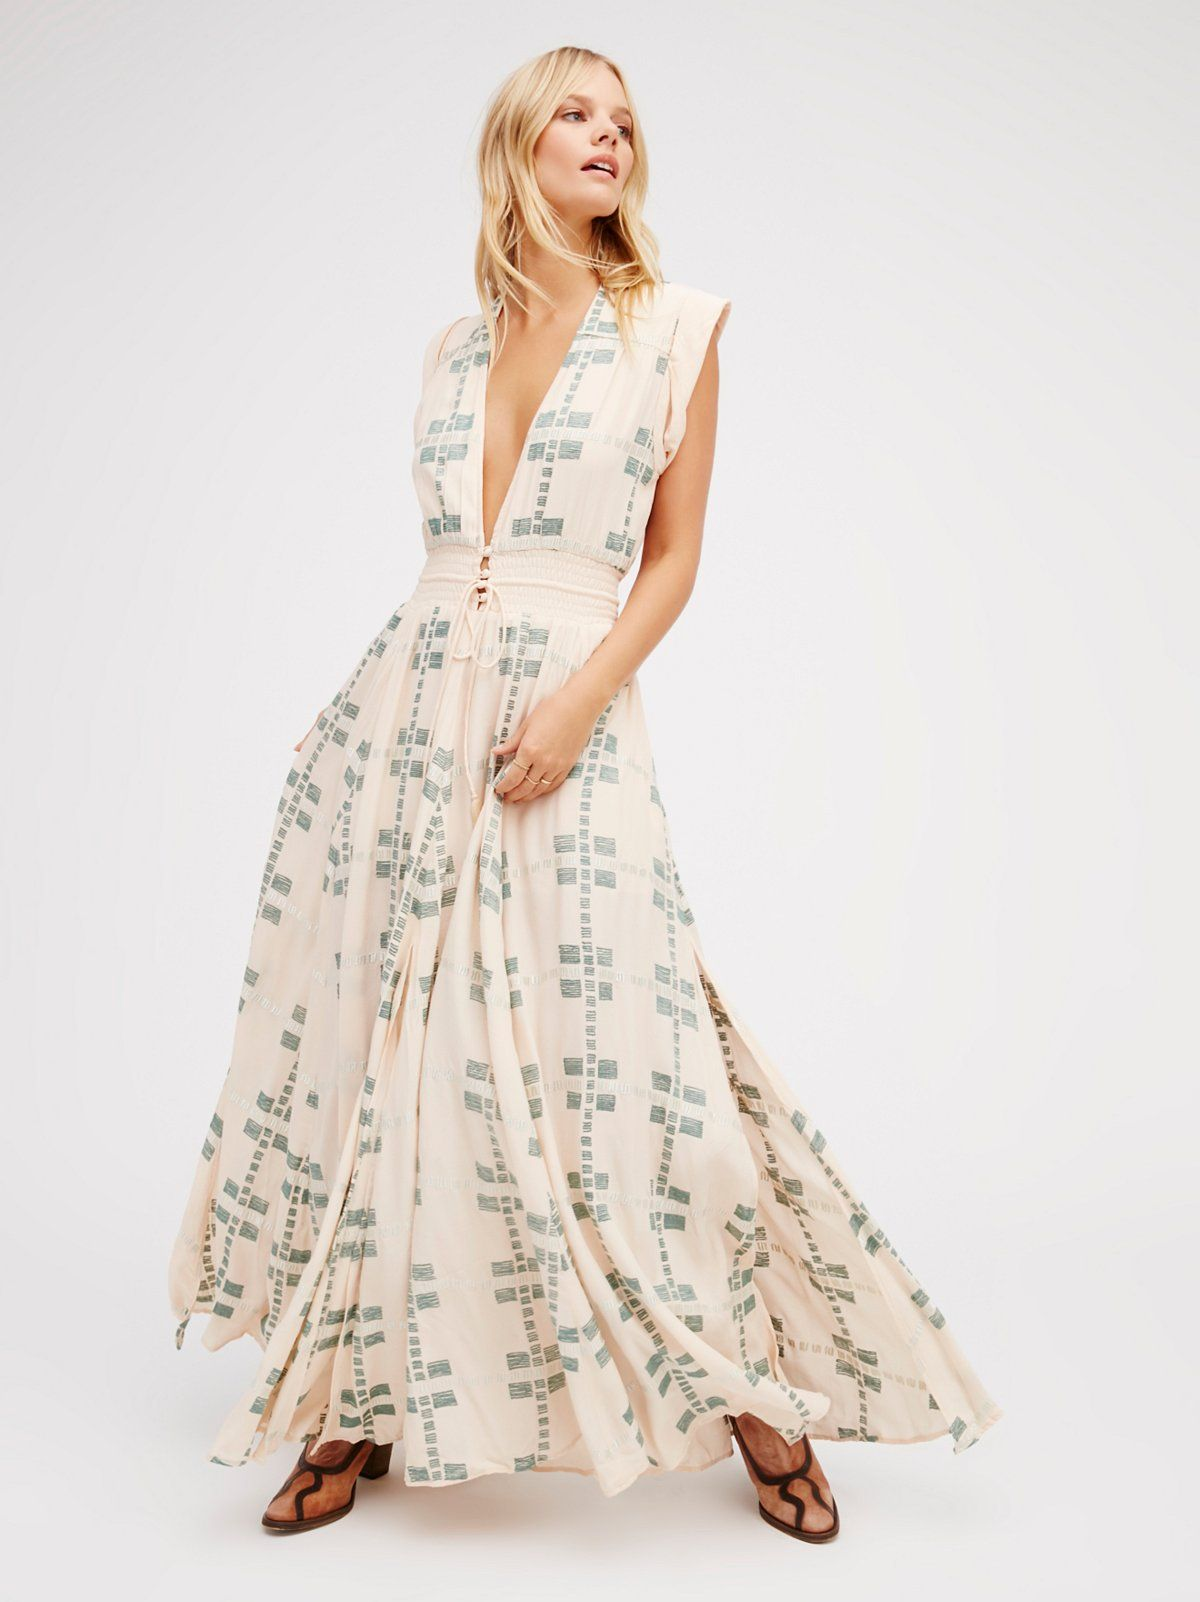 Summer flame maxi fashion style dress pinterest plunging